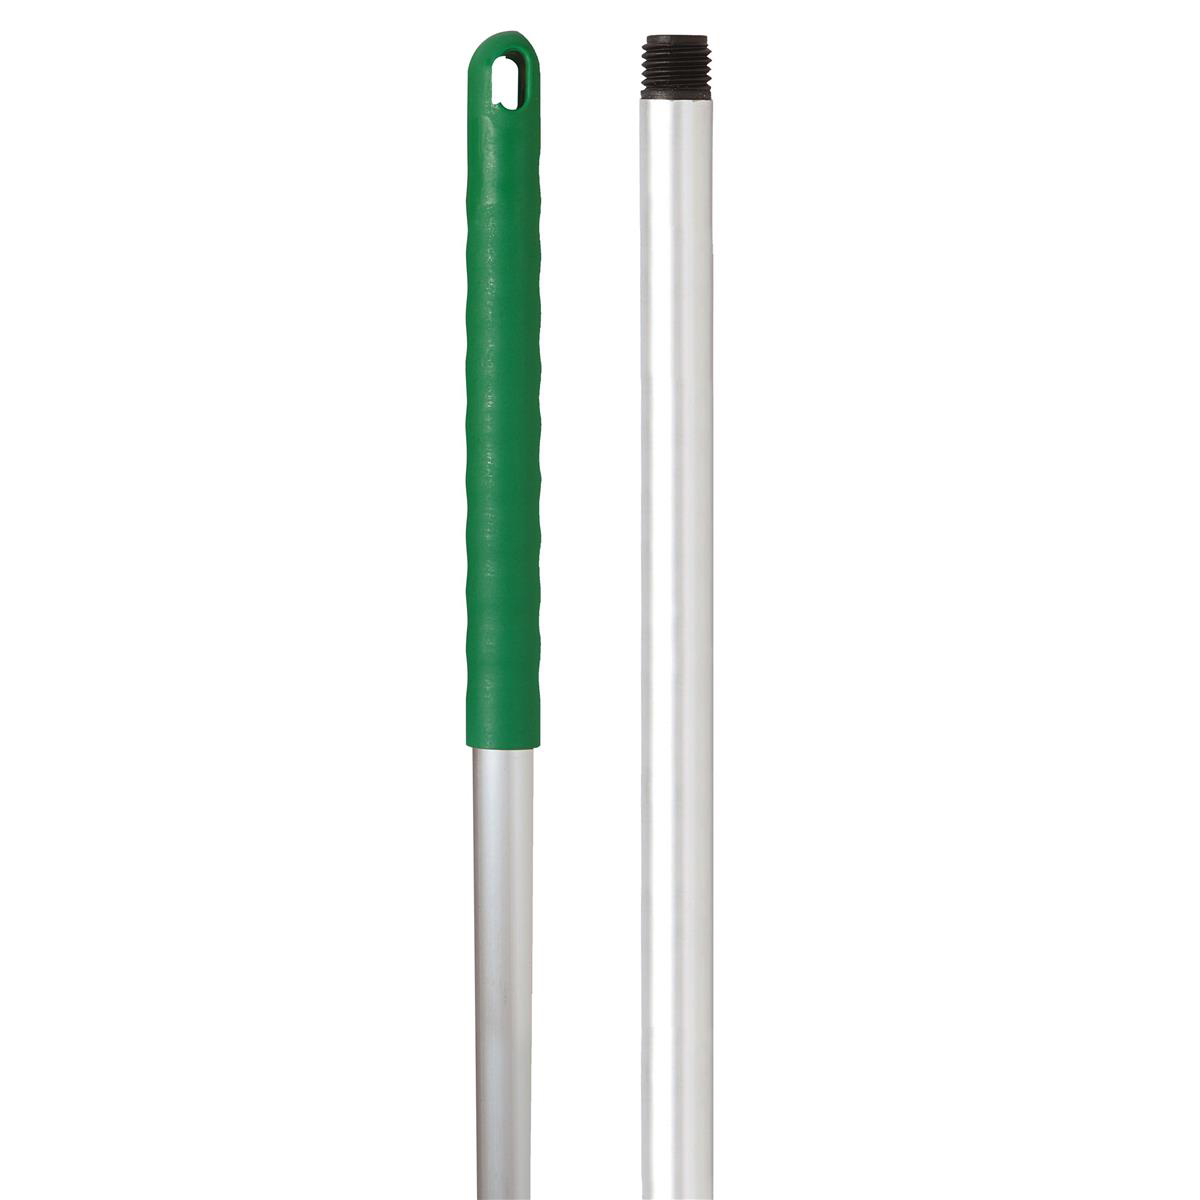 Broom or mop handles Robert Scott & Sons Abbey Hygiene Mop Handle Aluminium Colour-coded Screw 125cm Green Ref AH49G